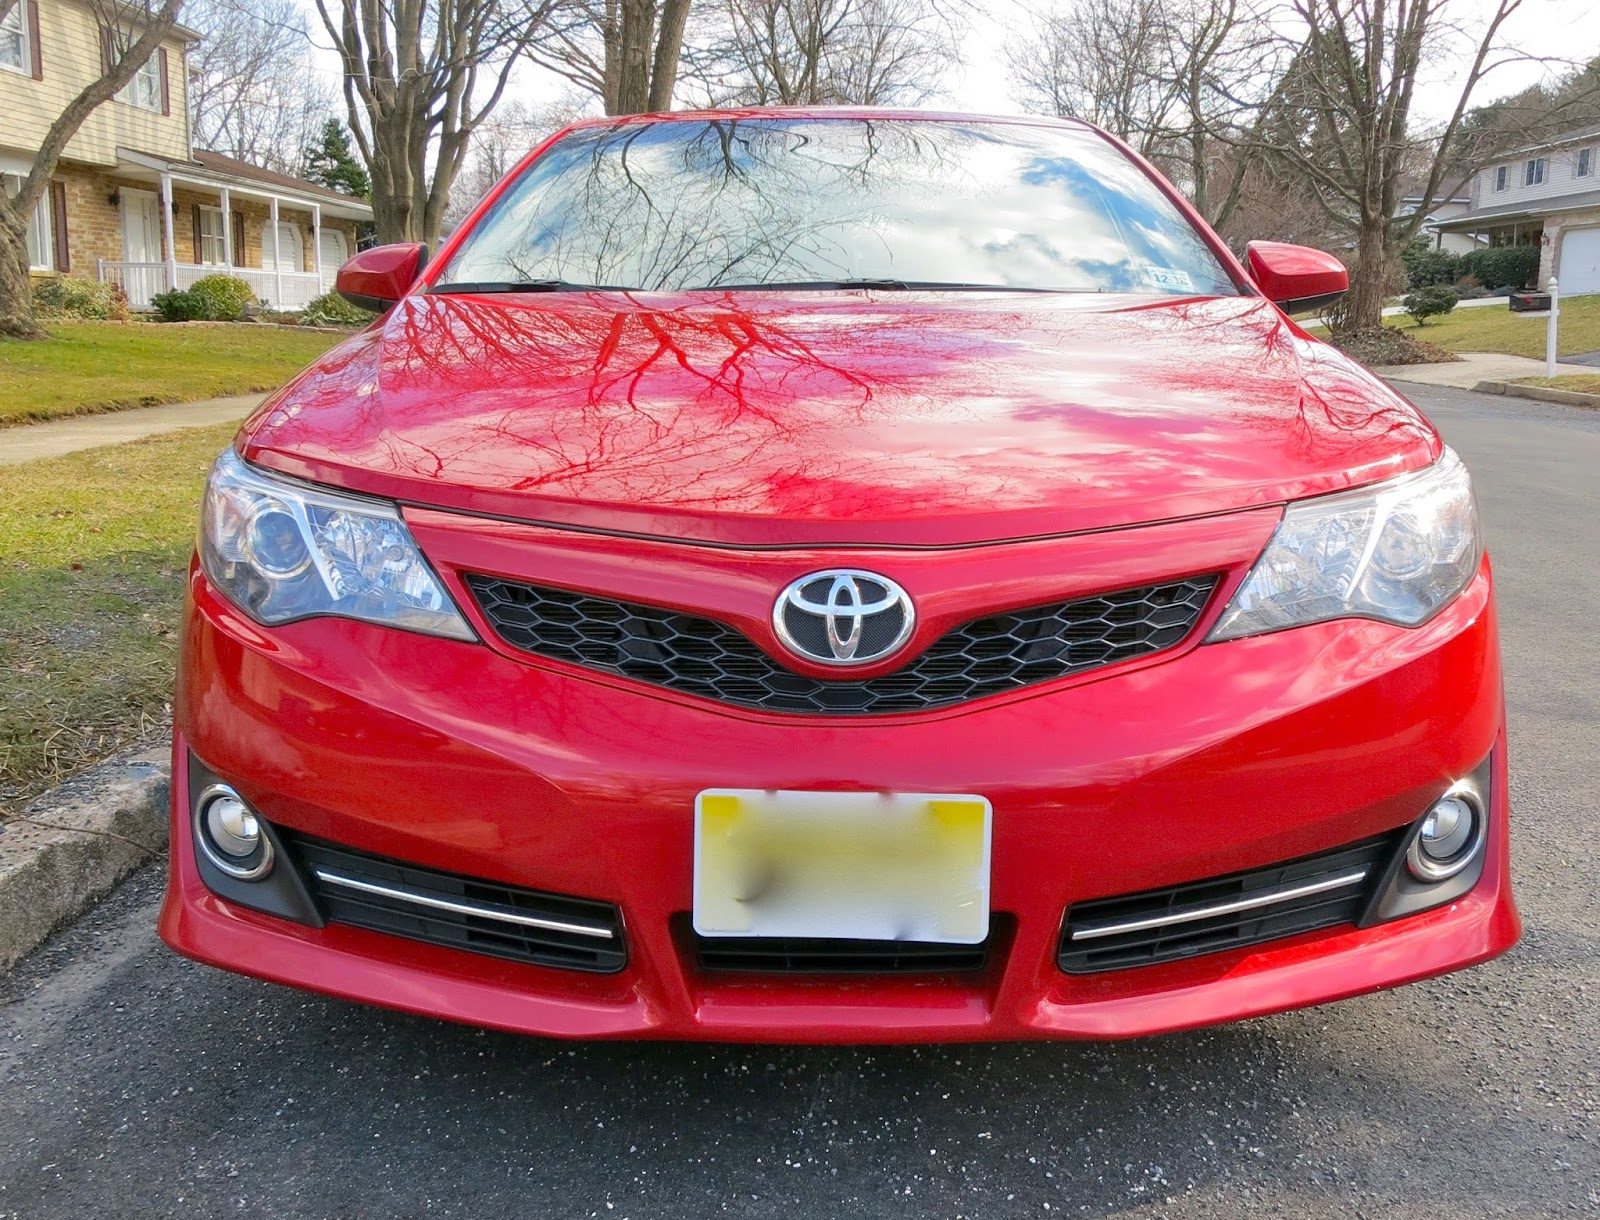 automobiles, Camry, car reviews, Cars, driving experiences, Toyota, Toyota Camry,